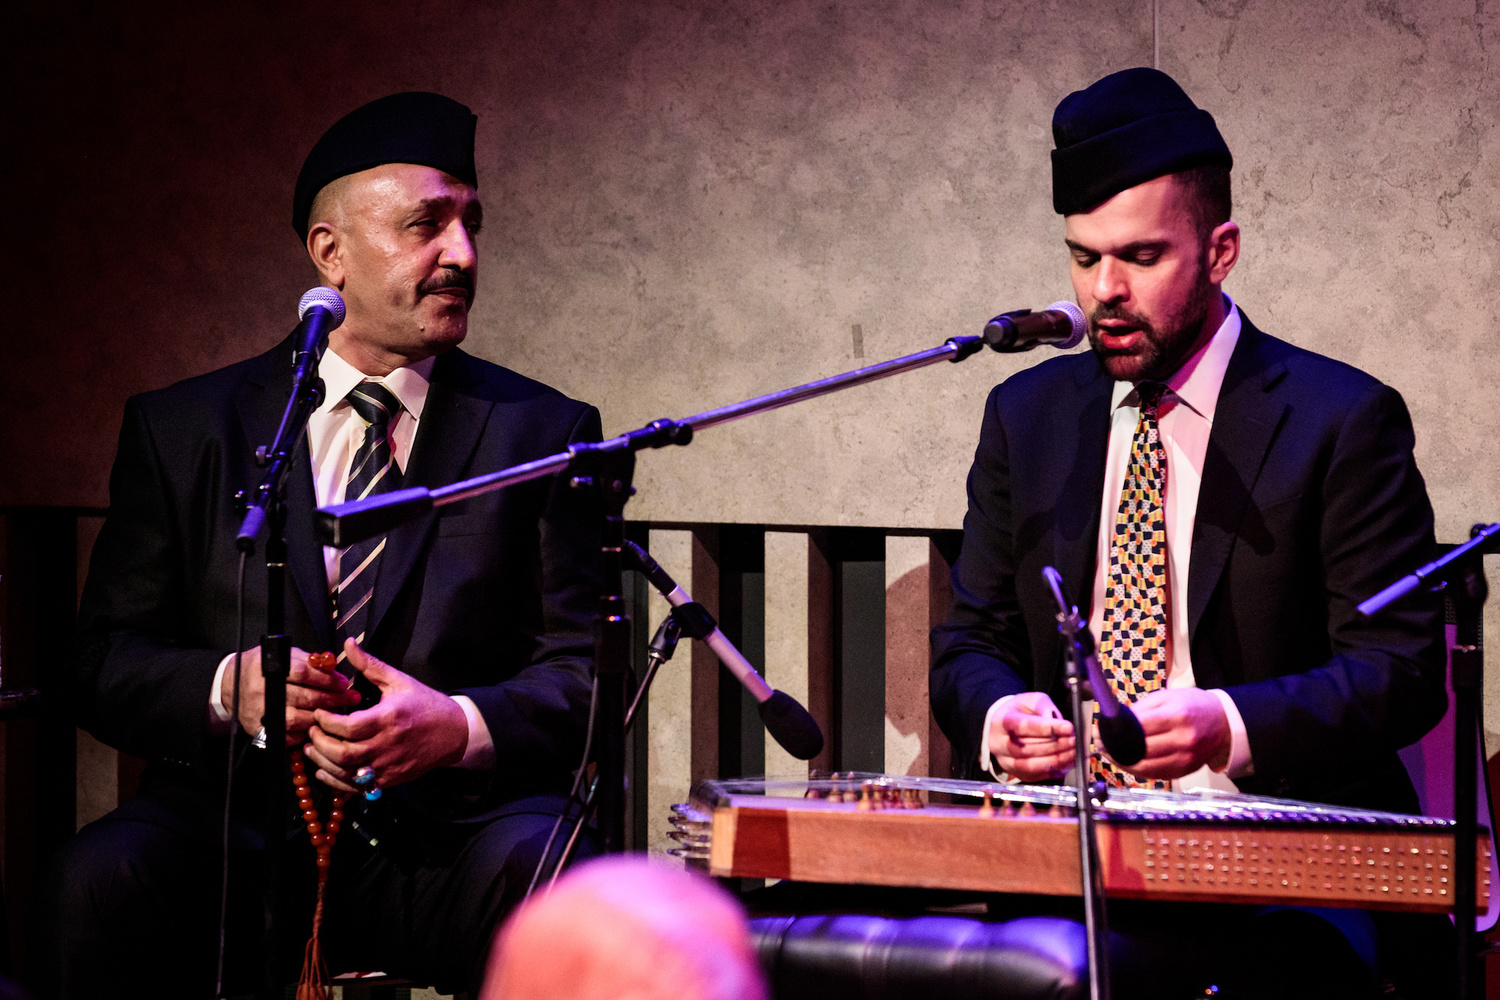 Hamid Al-Saadi performing with Amir ElSaffar. Courtesy of Amir ElSaffar